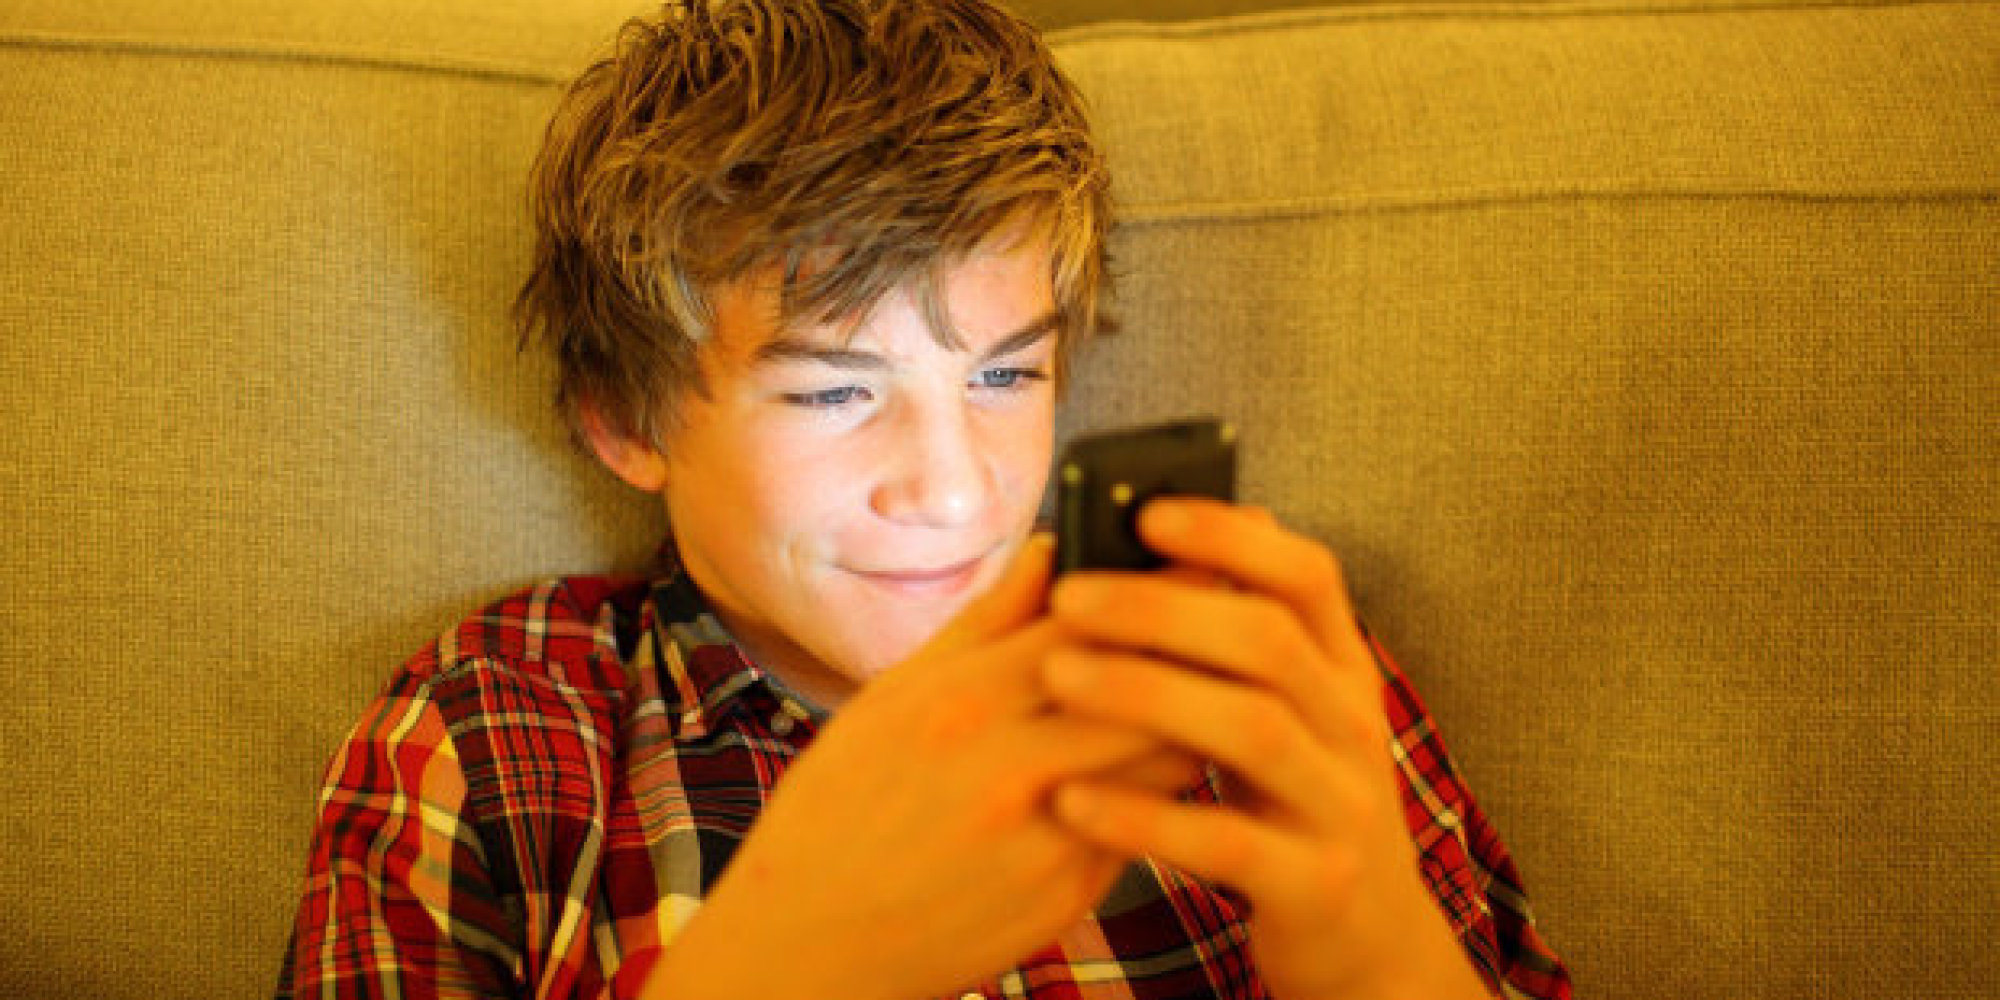 from Sean teen sexting pics video